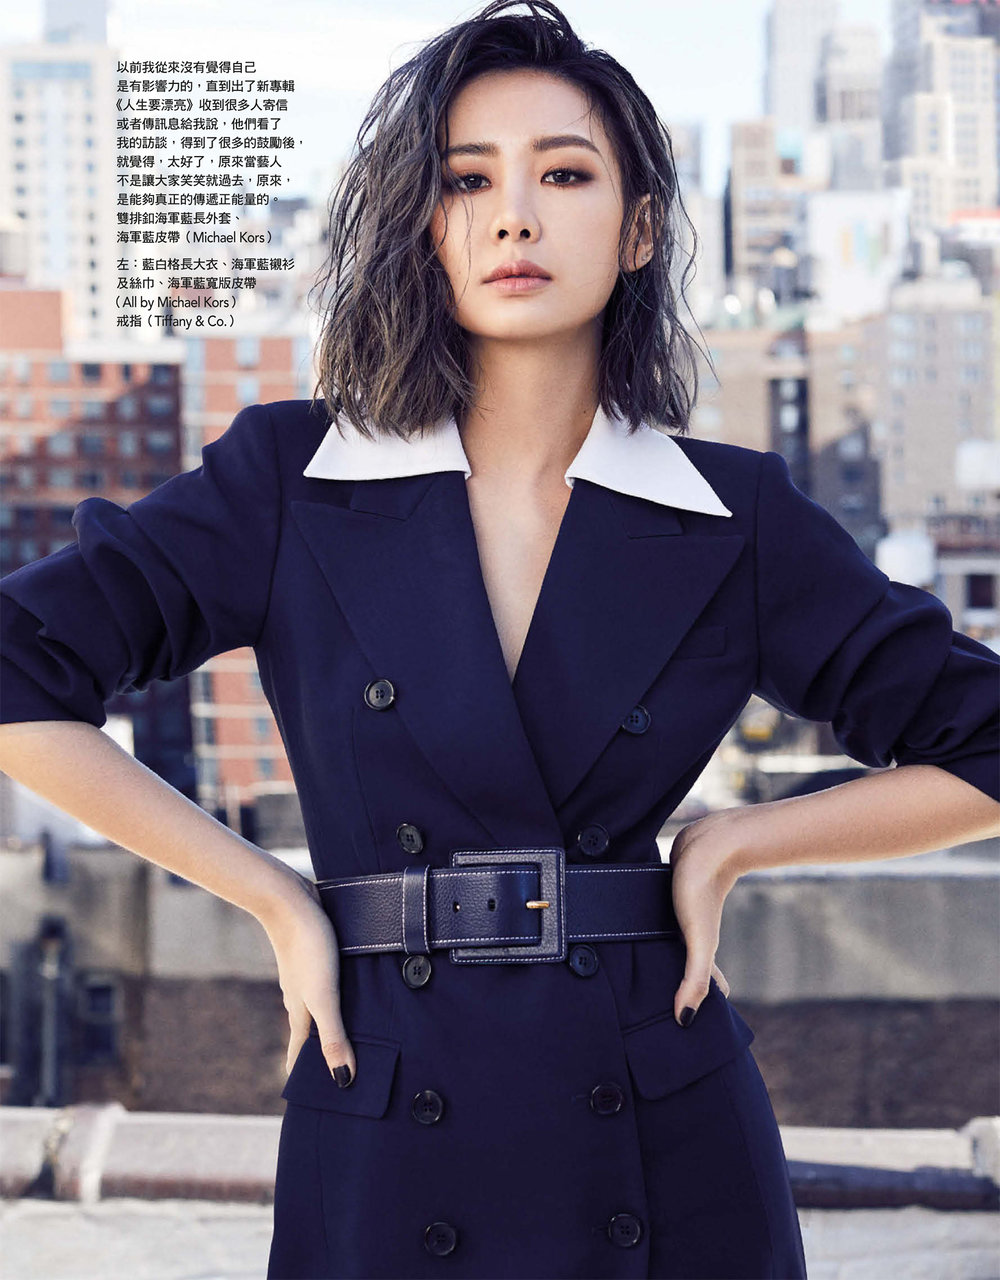 Vogue_Taiwan_Issue_247_April_2017-249.jpg